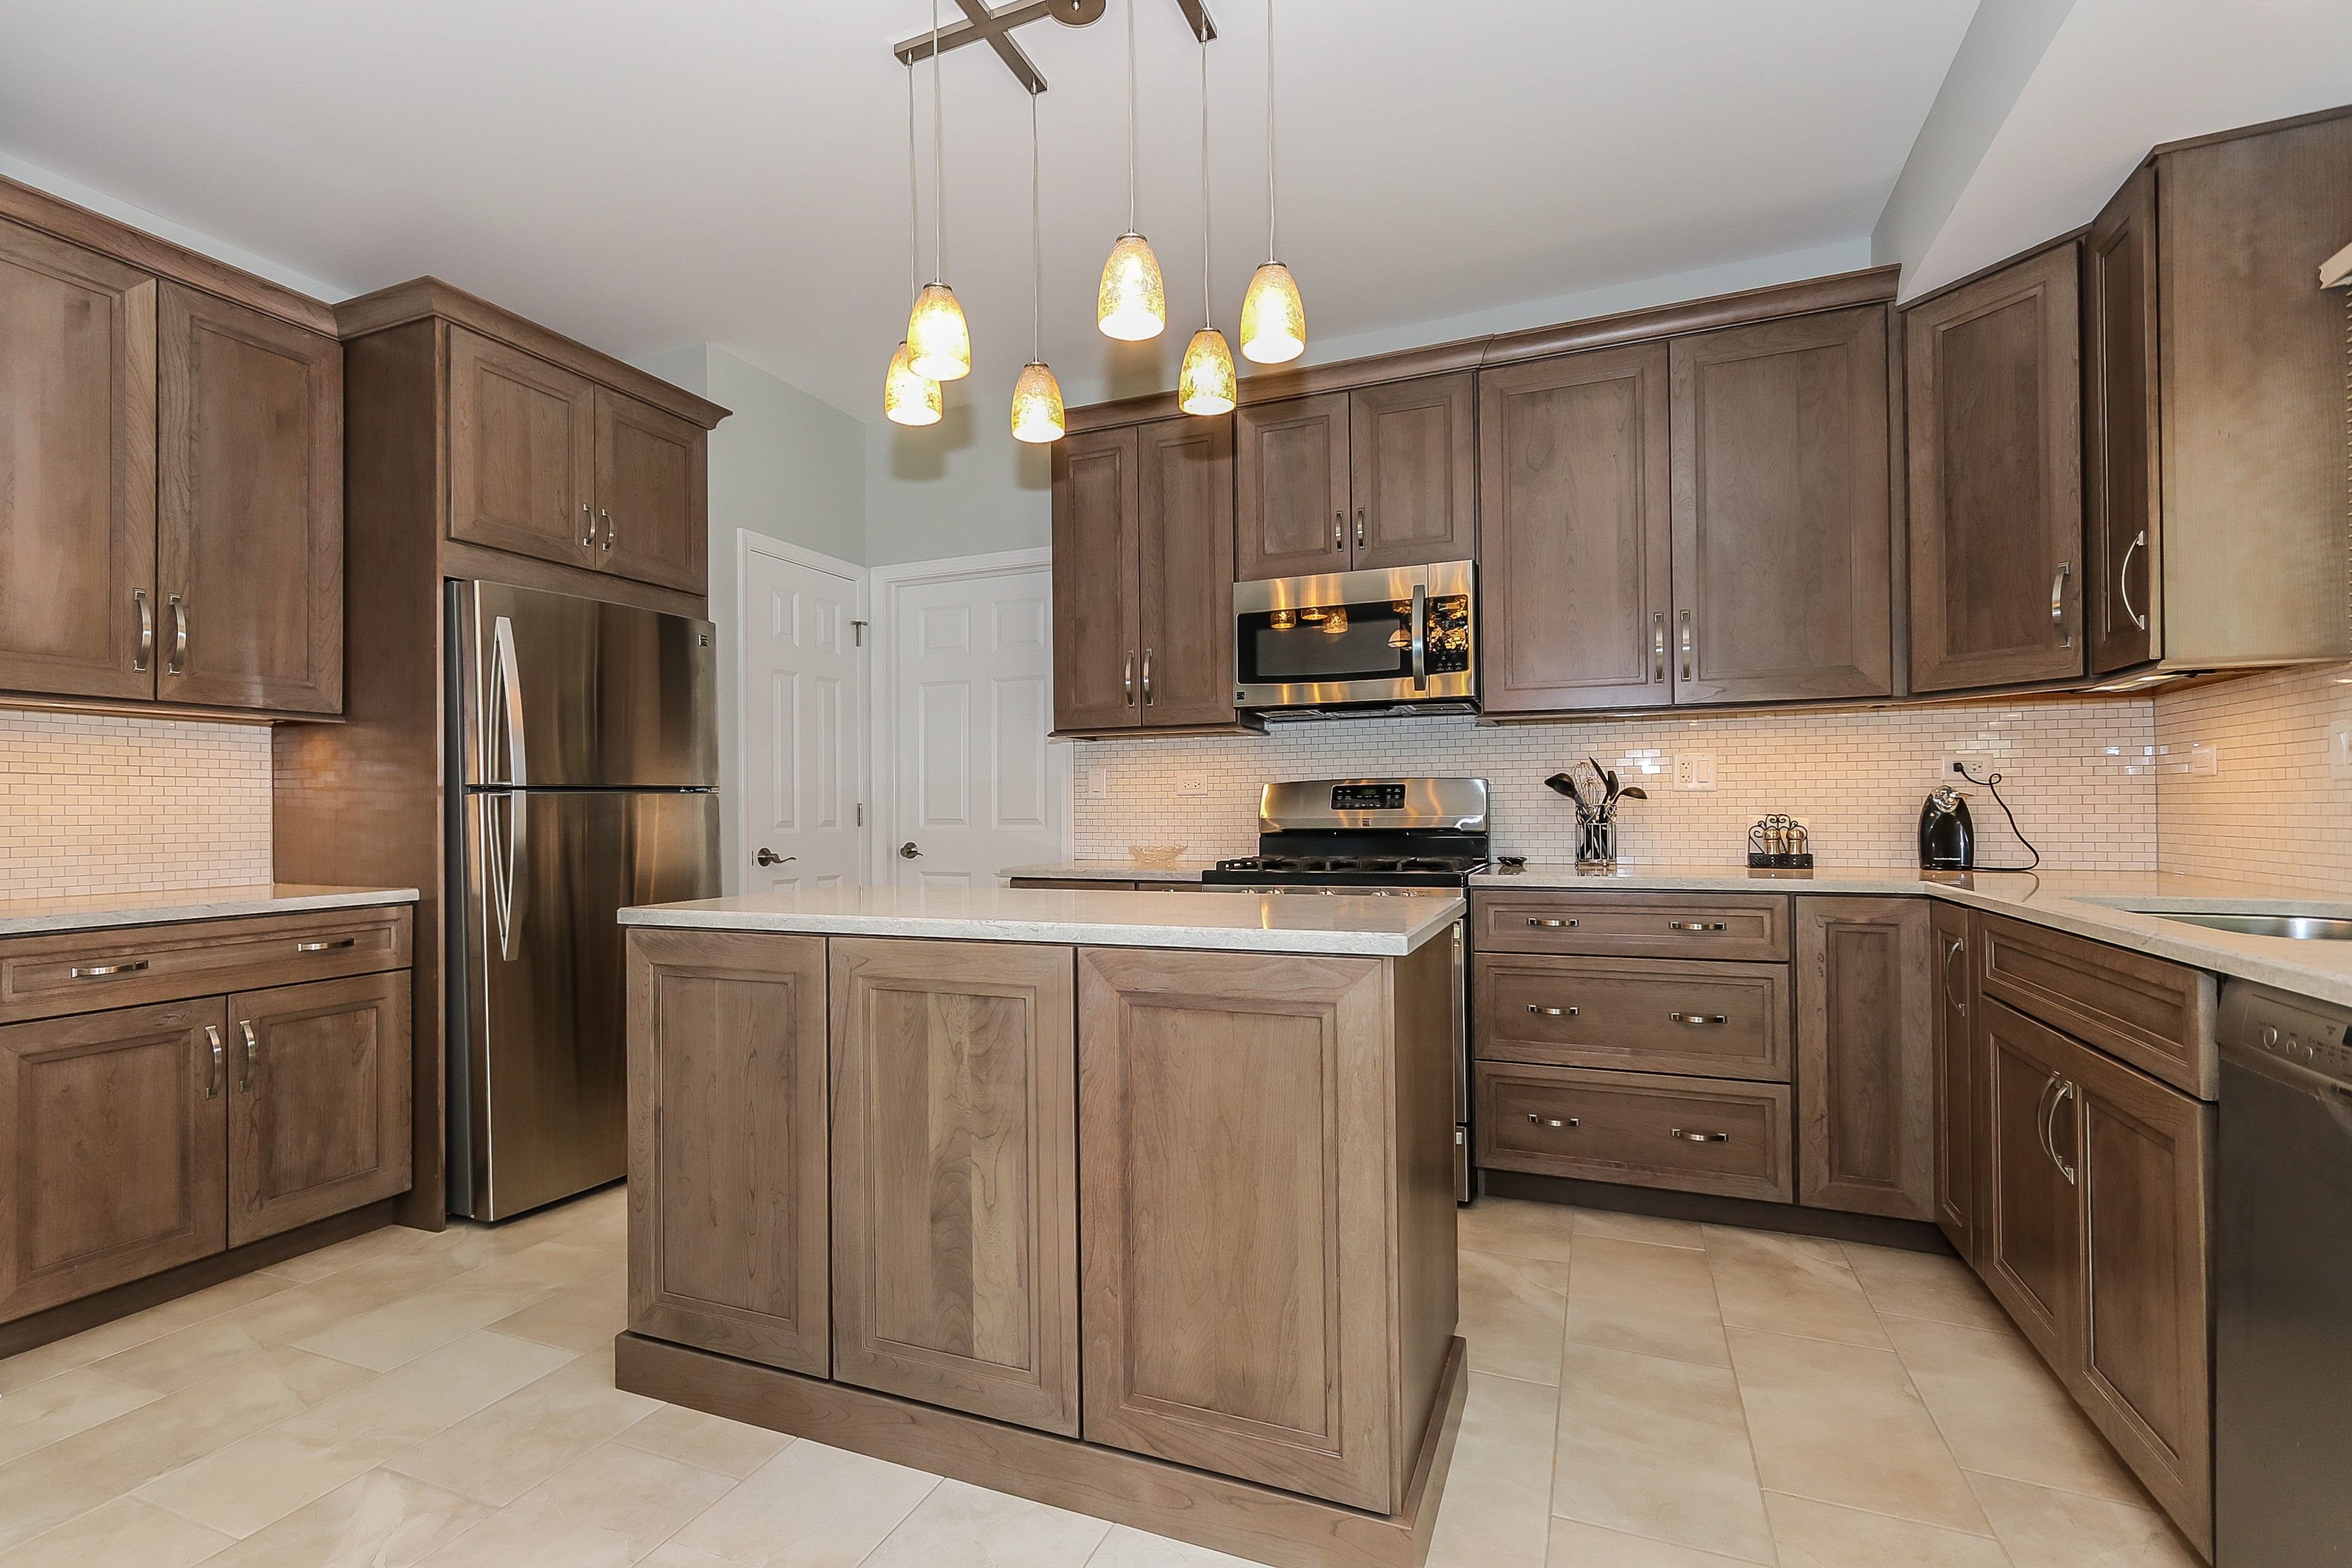 Bianco Drift Quartz By Ceasarstone Cherry Cabinets By Omega With A Stain Color Called Pumice Kitchen Remodel Staining Cabinets Professional Kitchen Design